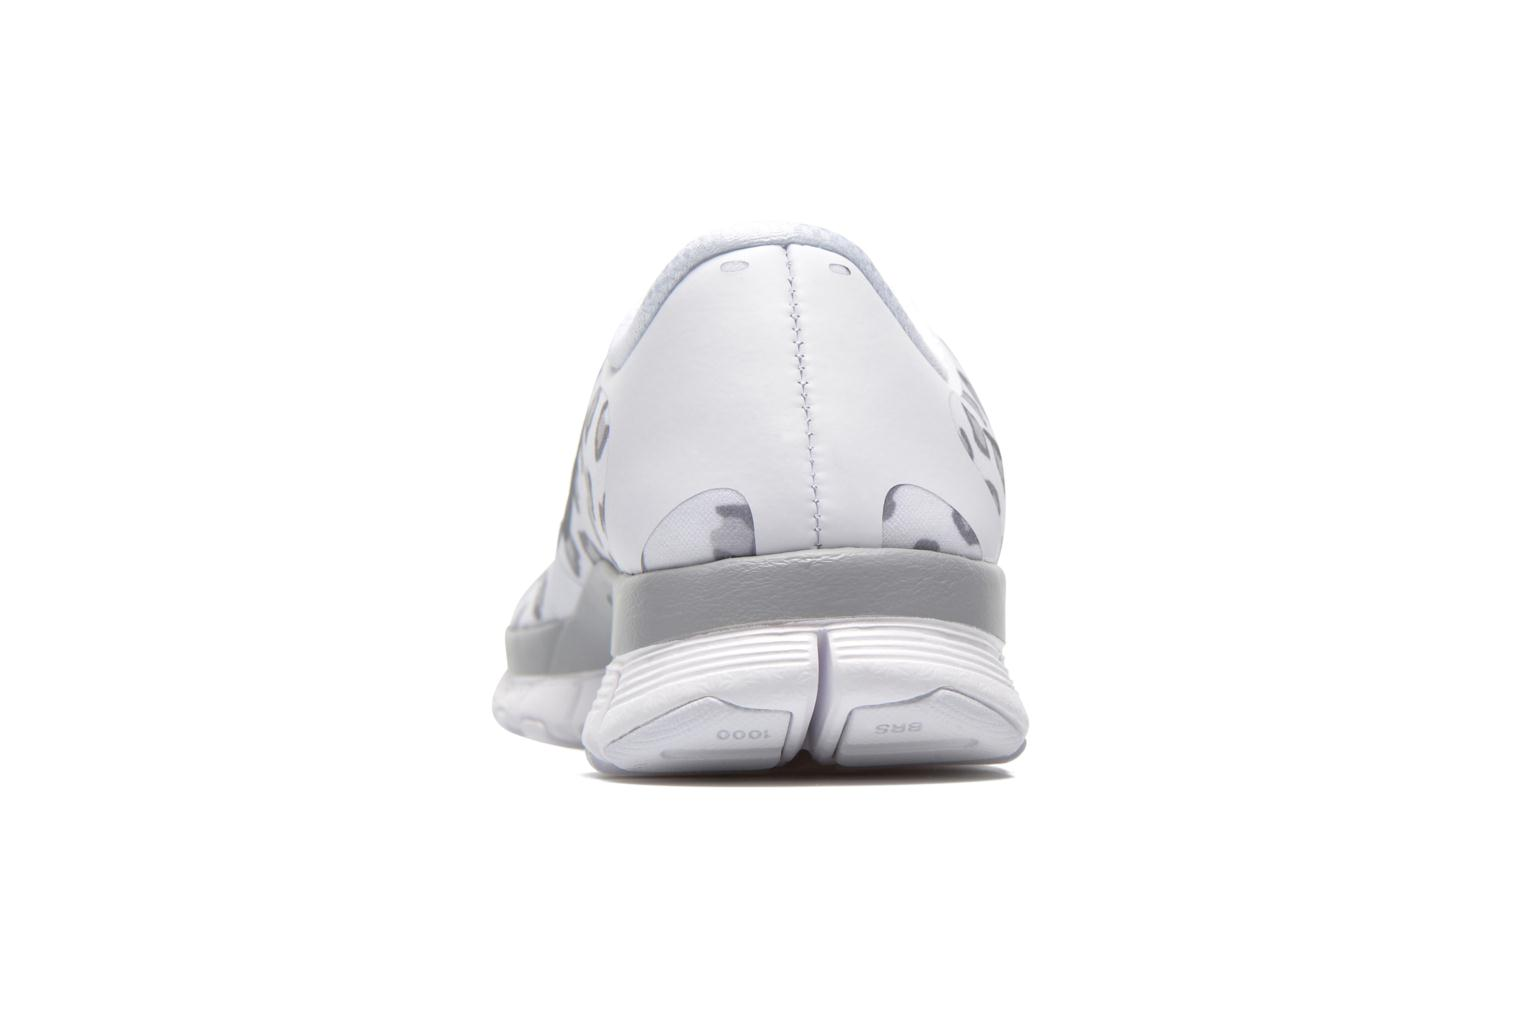 W Nk Free 5.0 V4 Ns Pt White/wolf grey-pure platinum